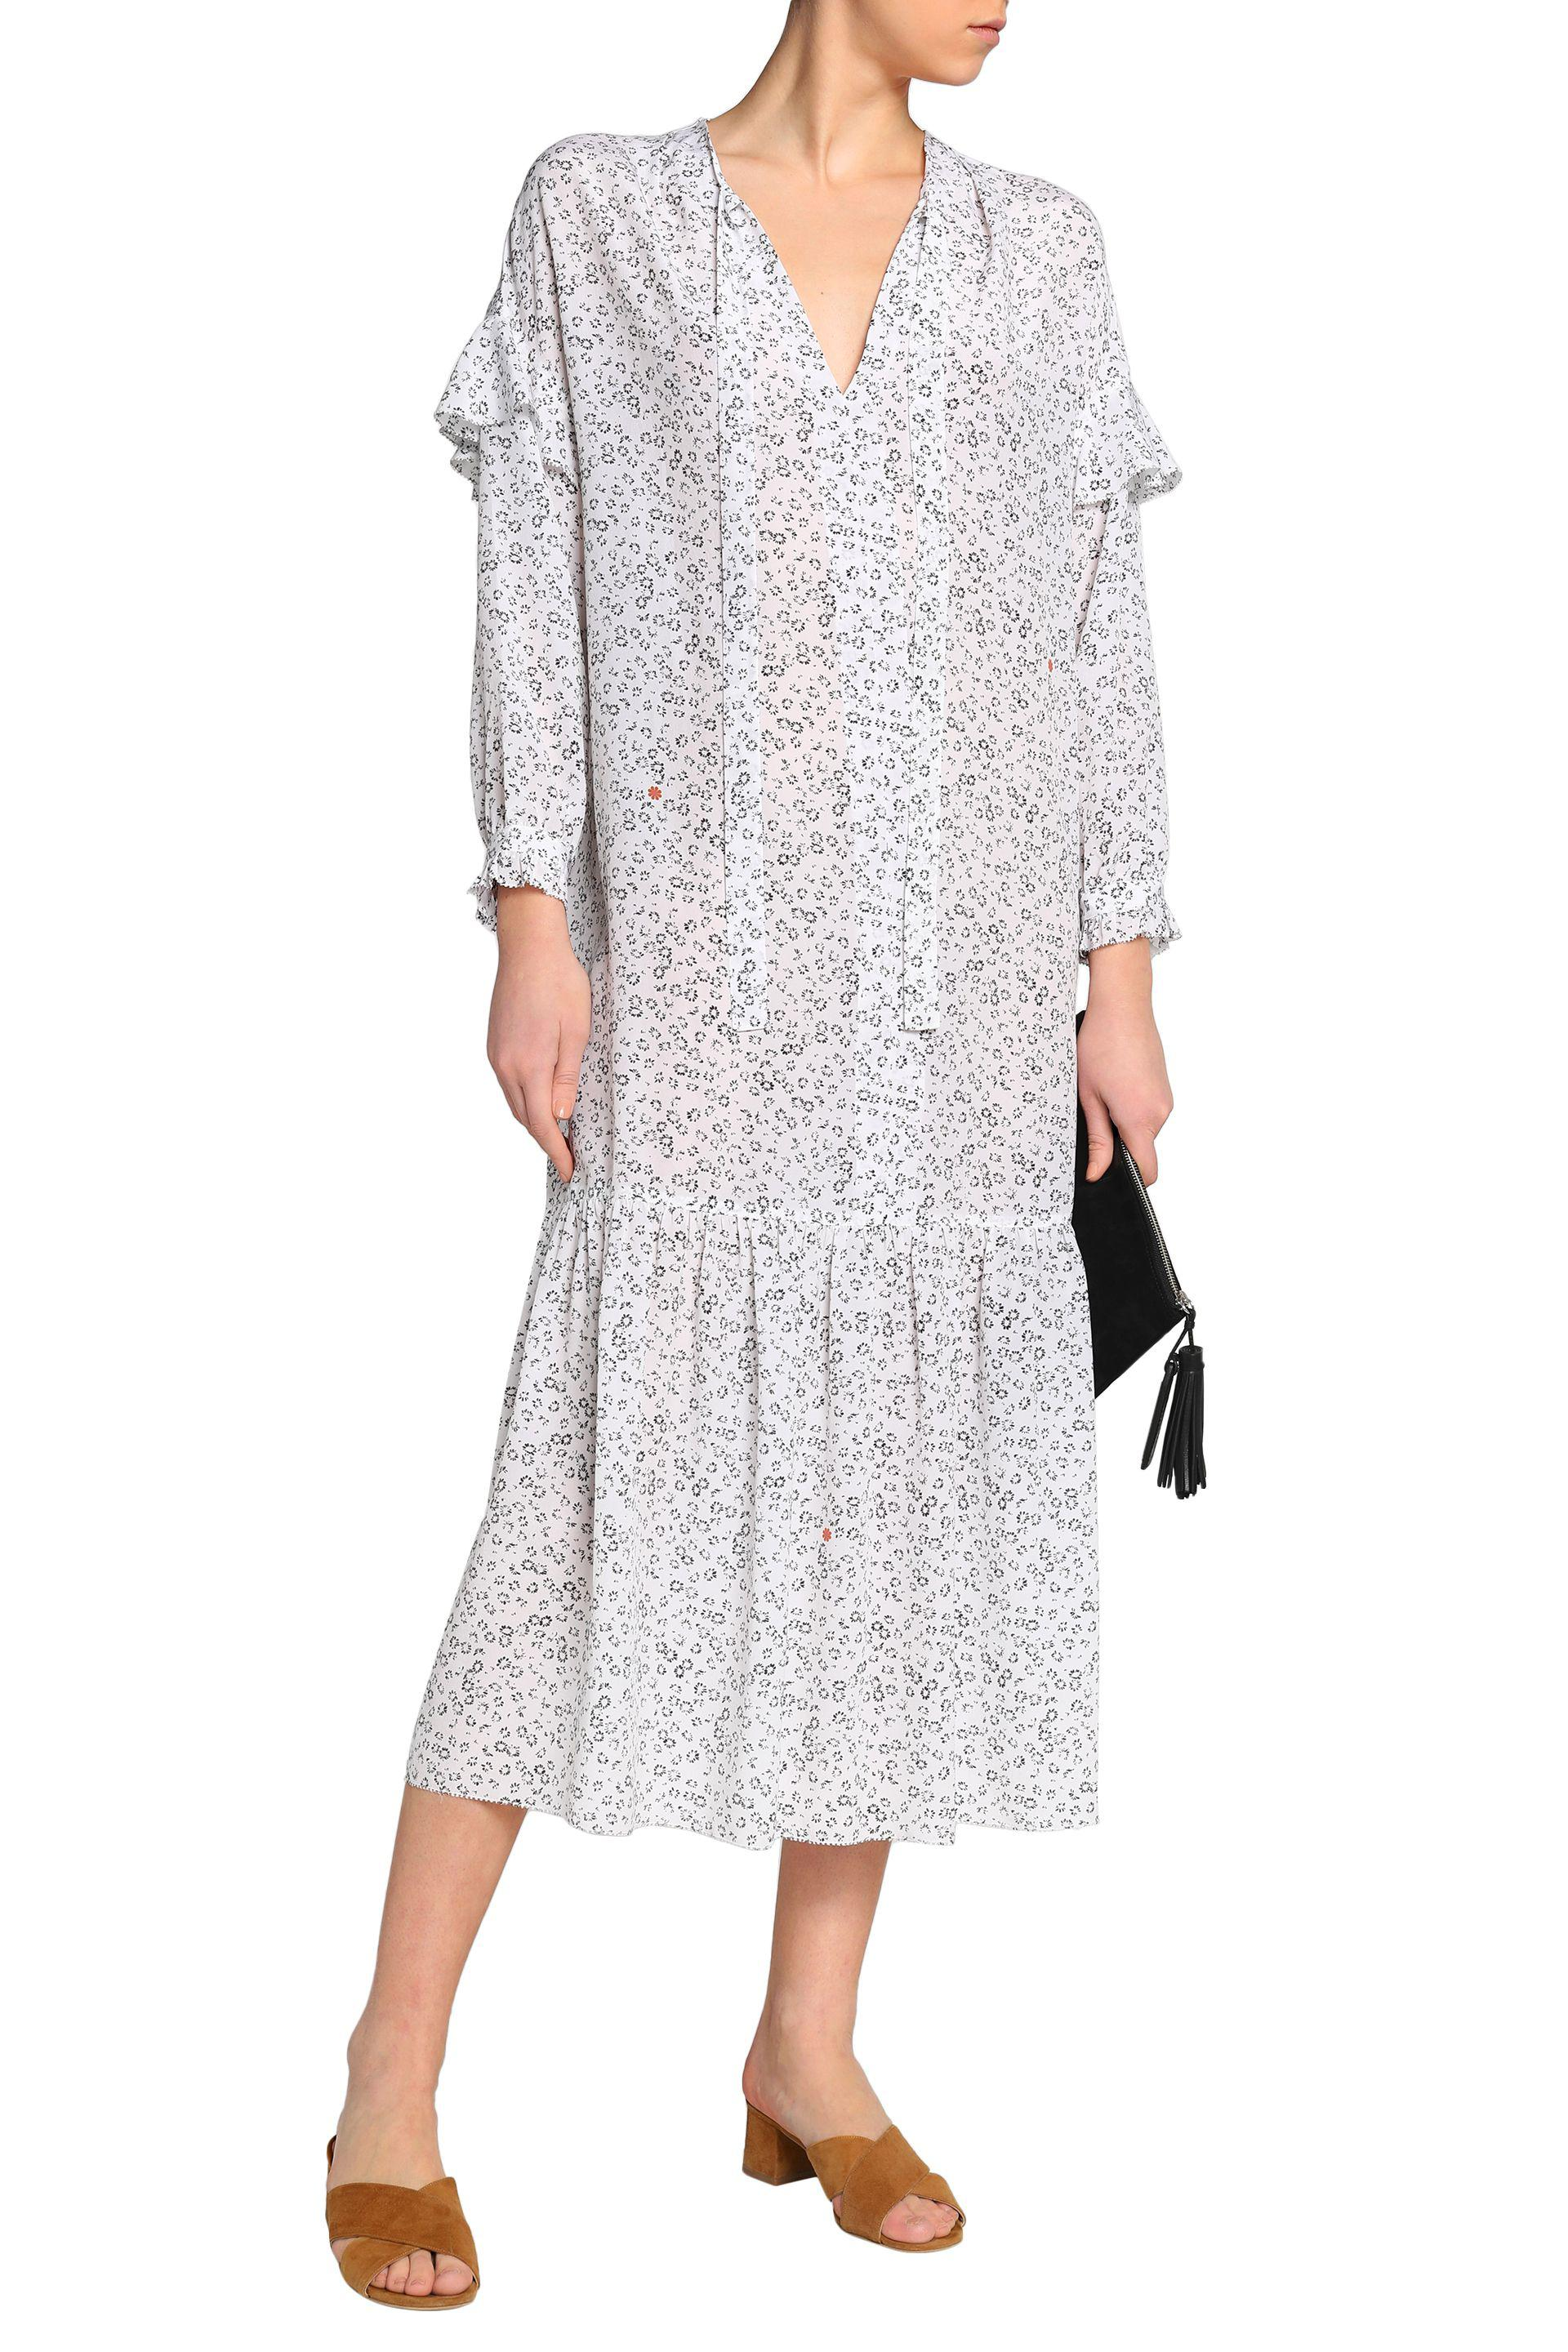 M.i.h Jeans Woman Erika Pussy-bow Floral-print Silk Midi Dress White Size XS Mih Jeans Oaufps